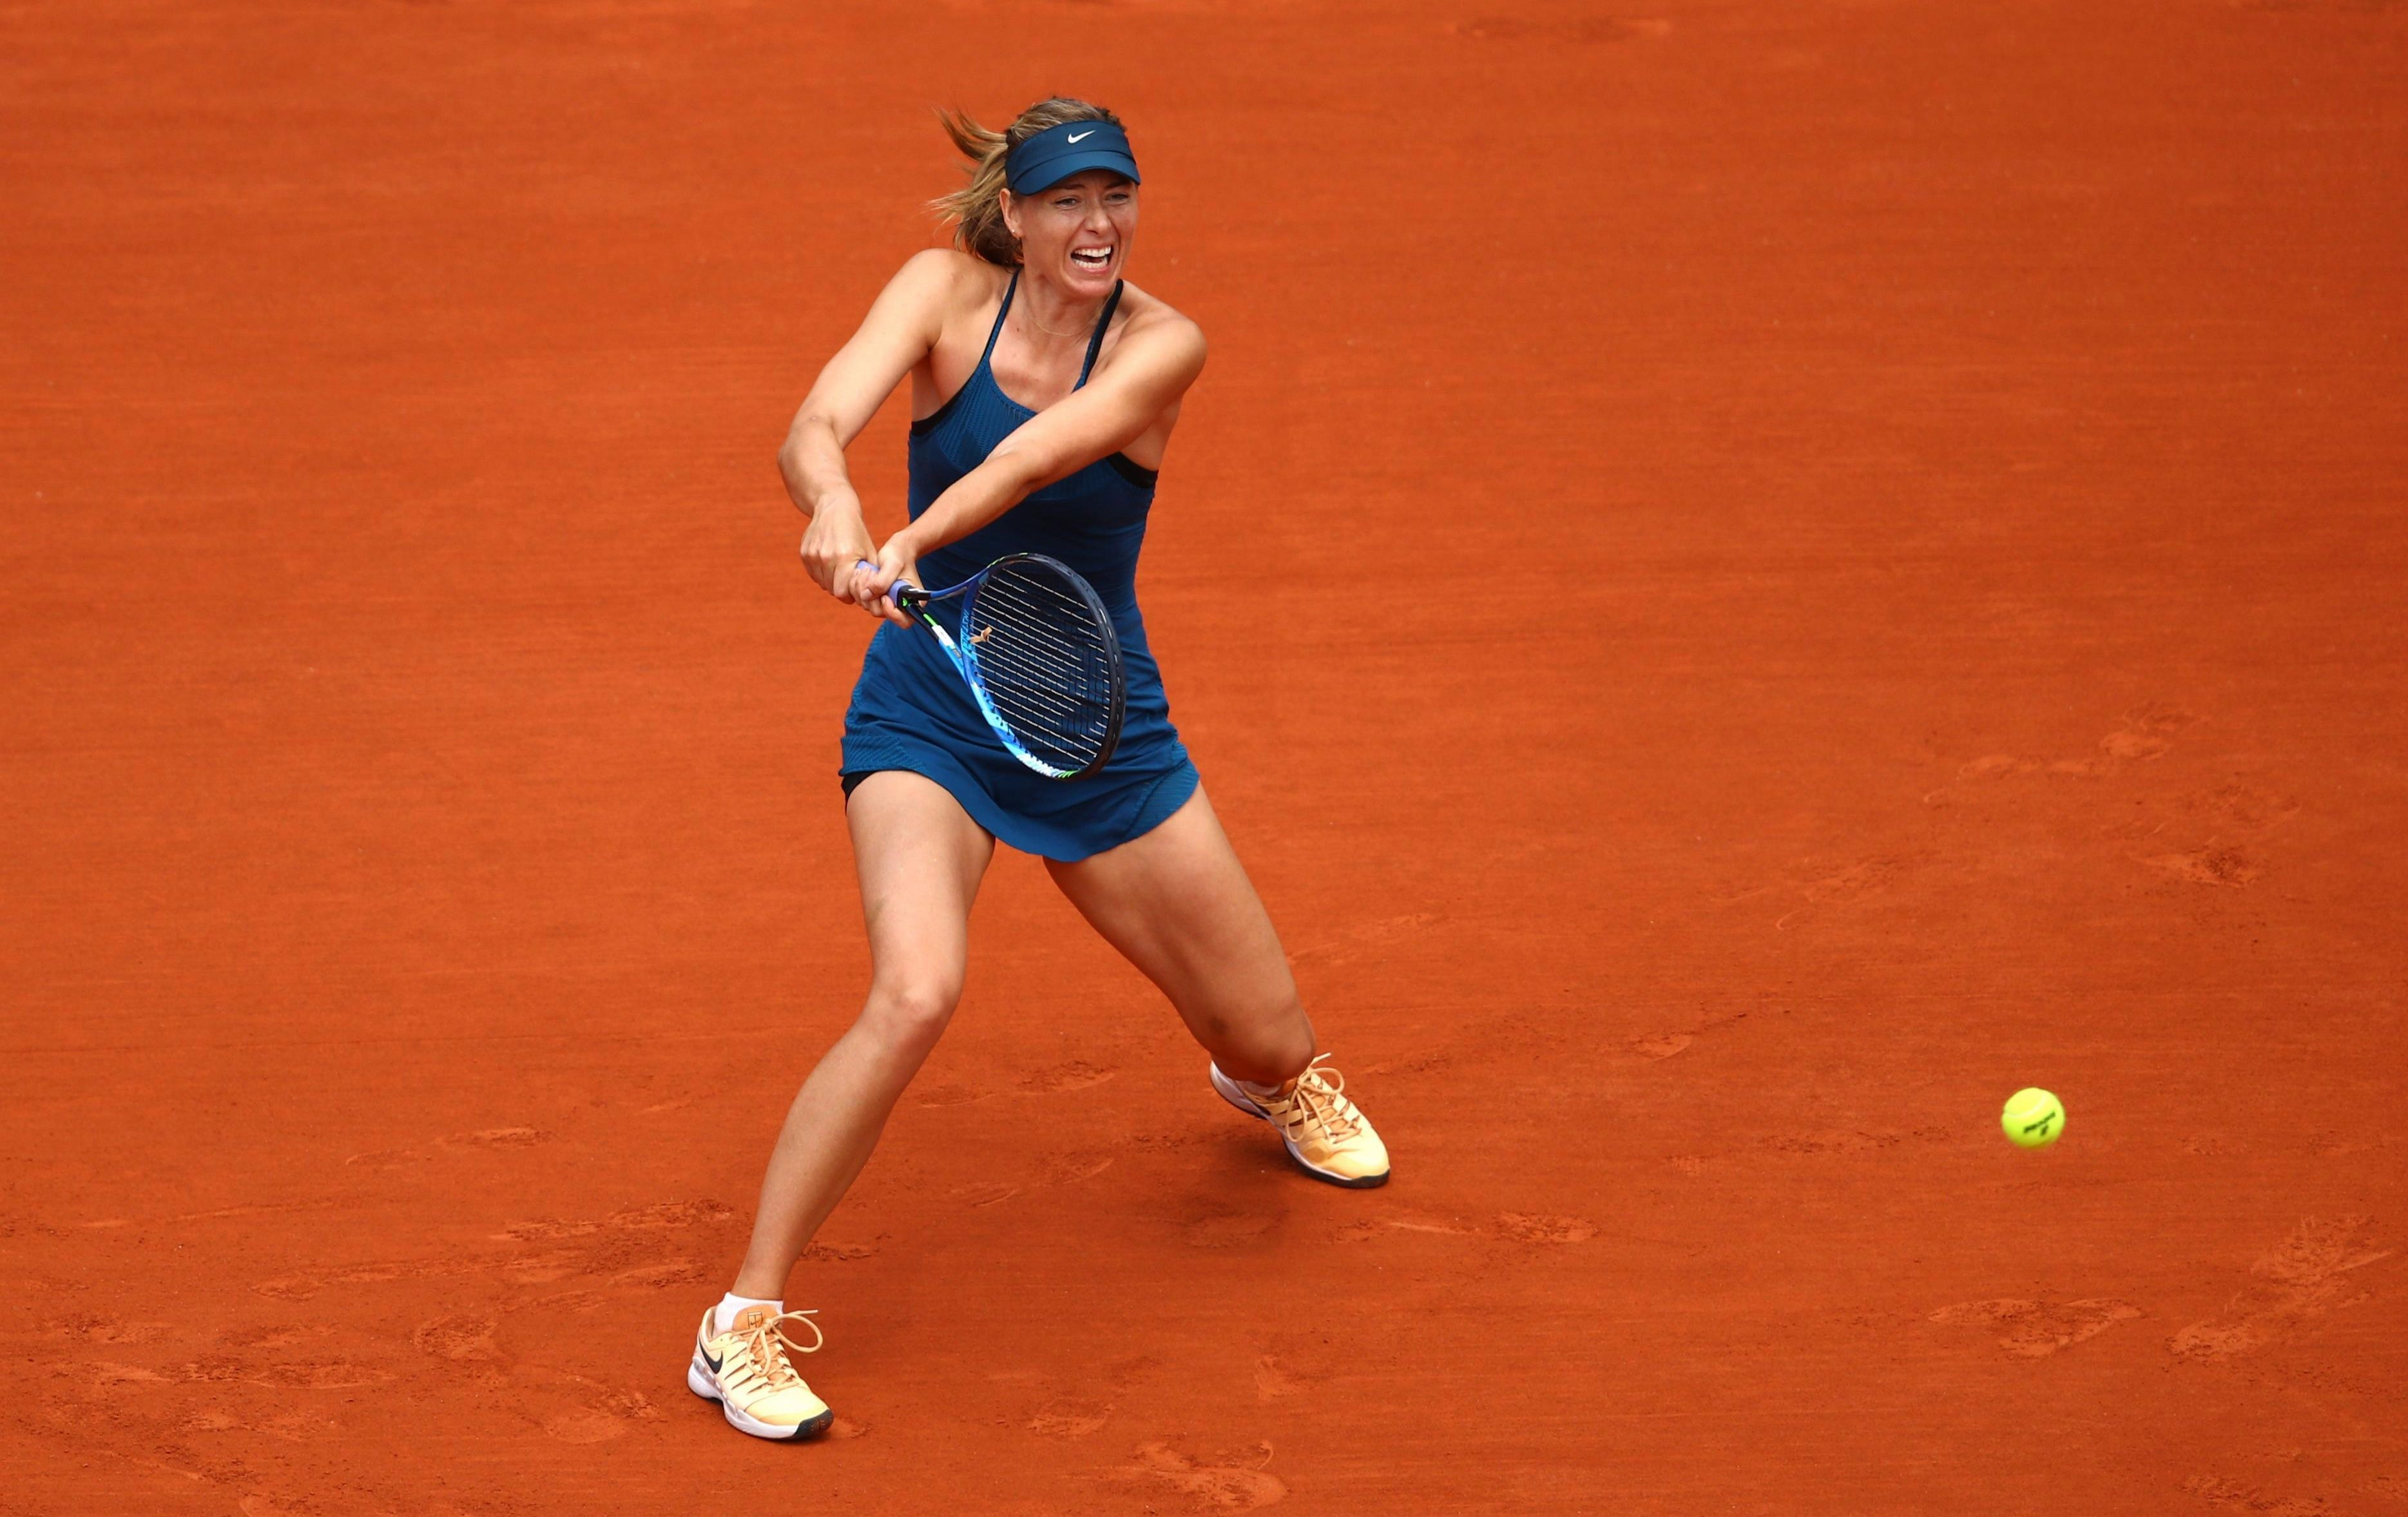 Maria Sharapova has earned around £10m a year from her deal with Nike